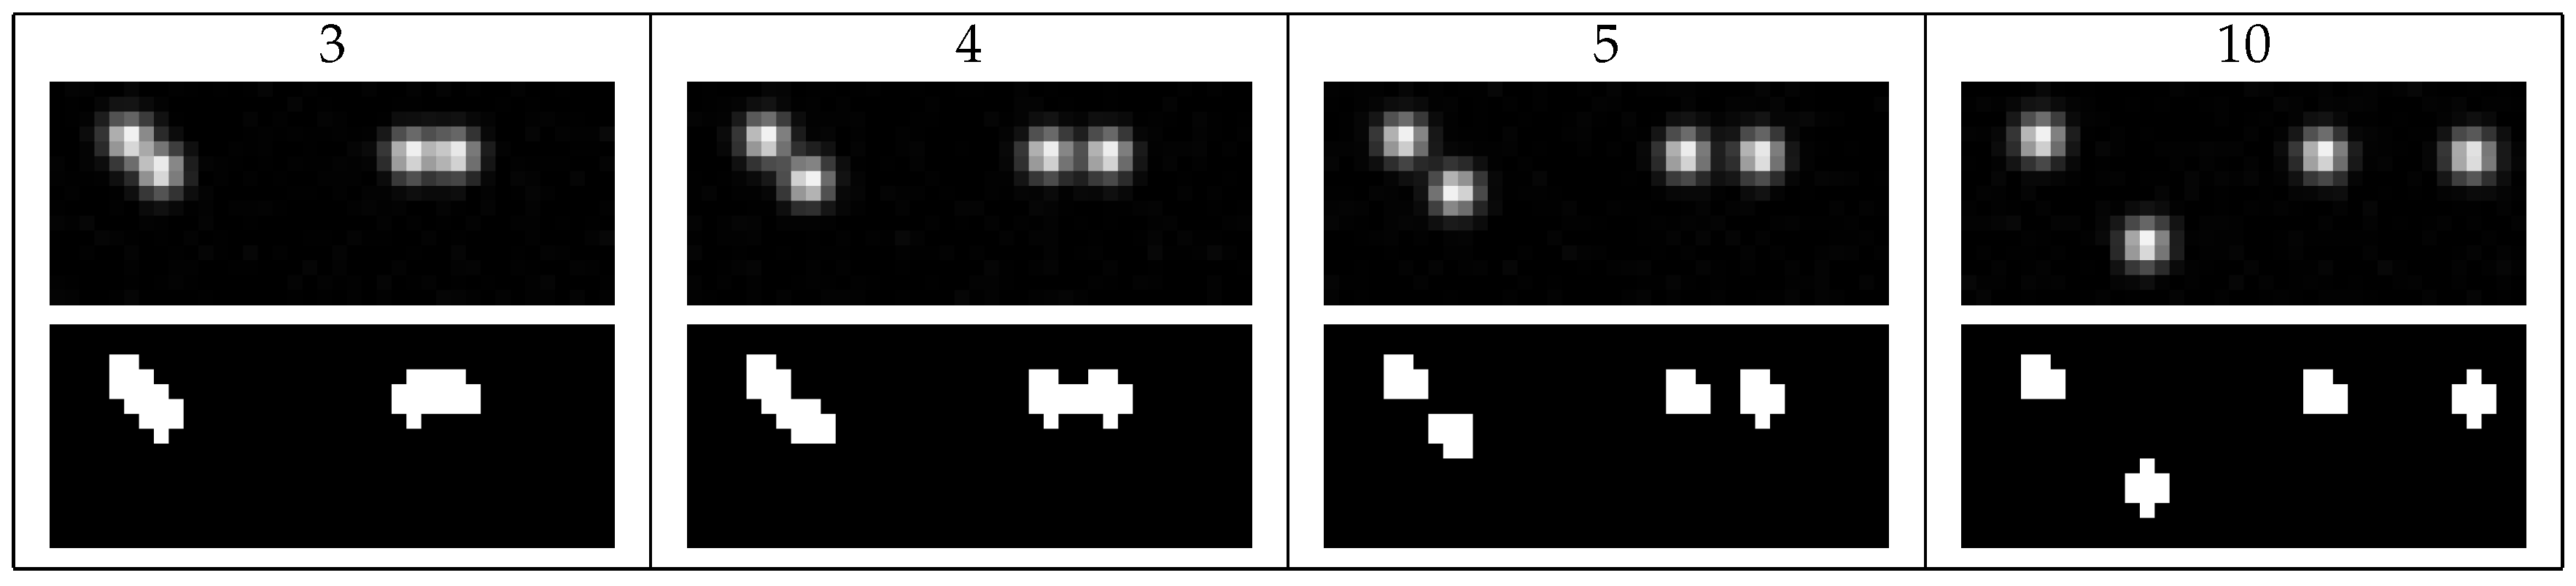 J  Imaging | Free Full-Text | Algorithms for Particle